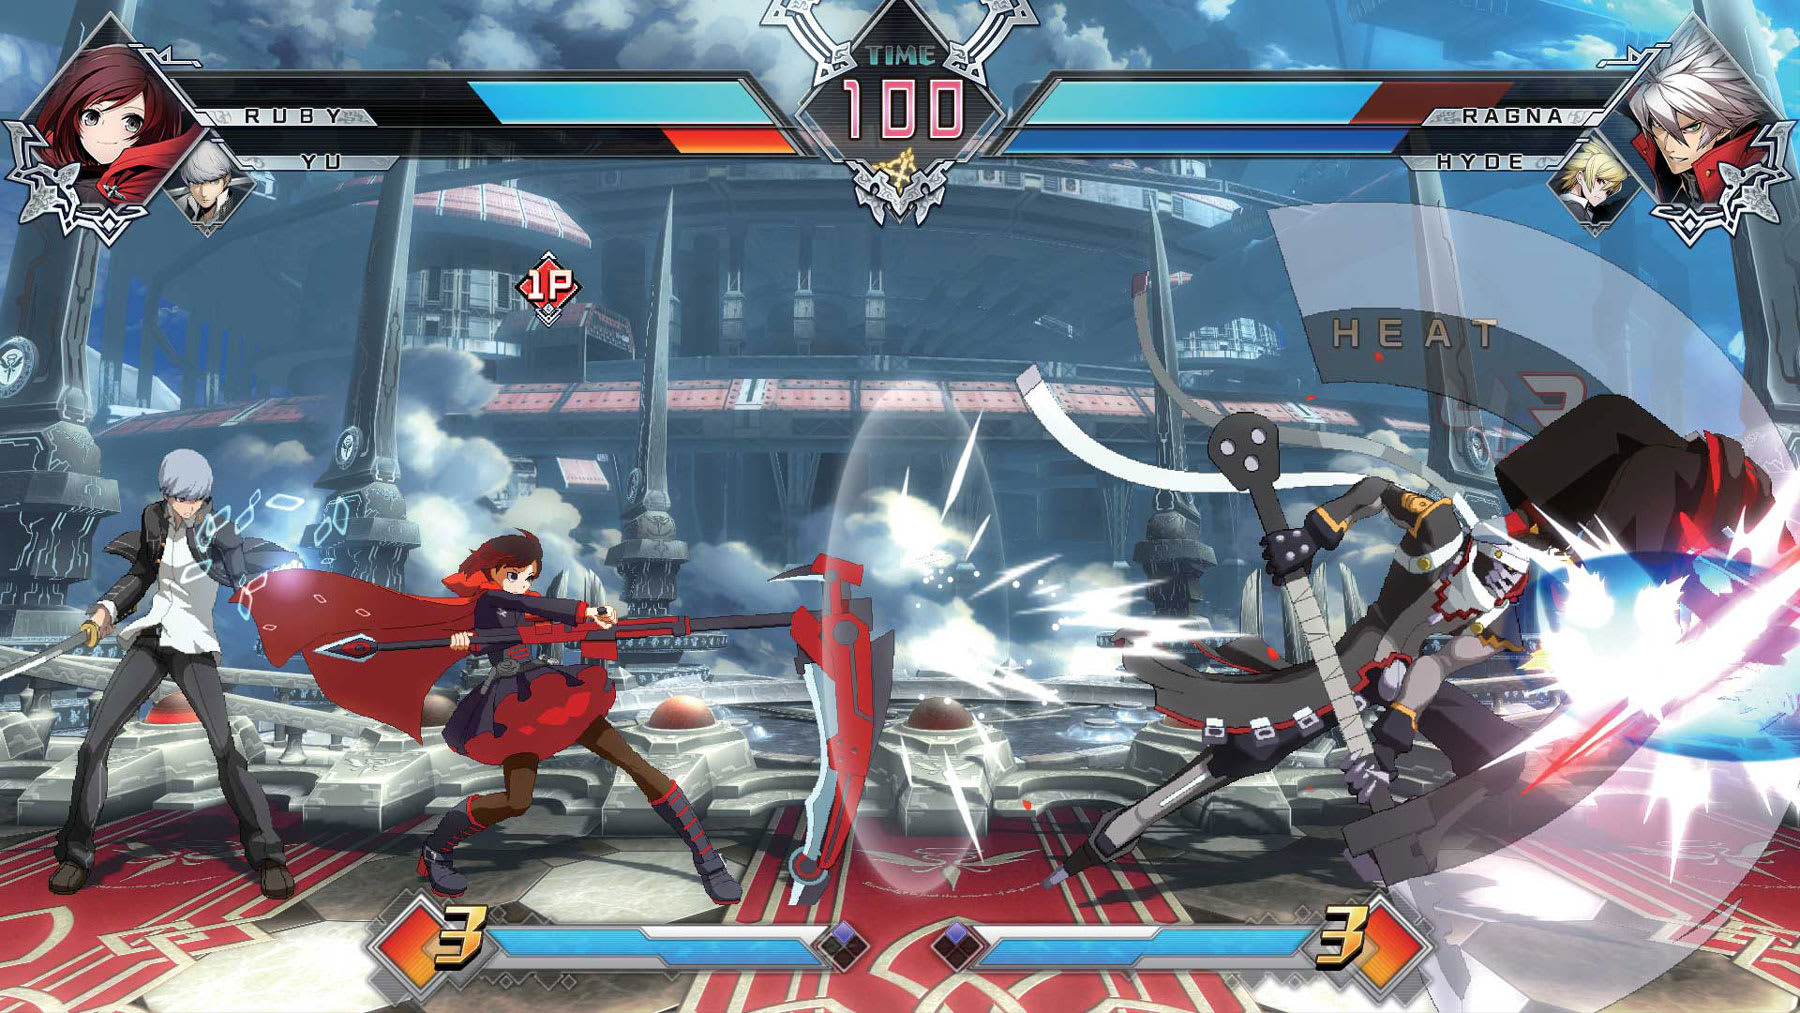 The latest 'BlazBlue' reminds me how impenetrable fighting